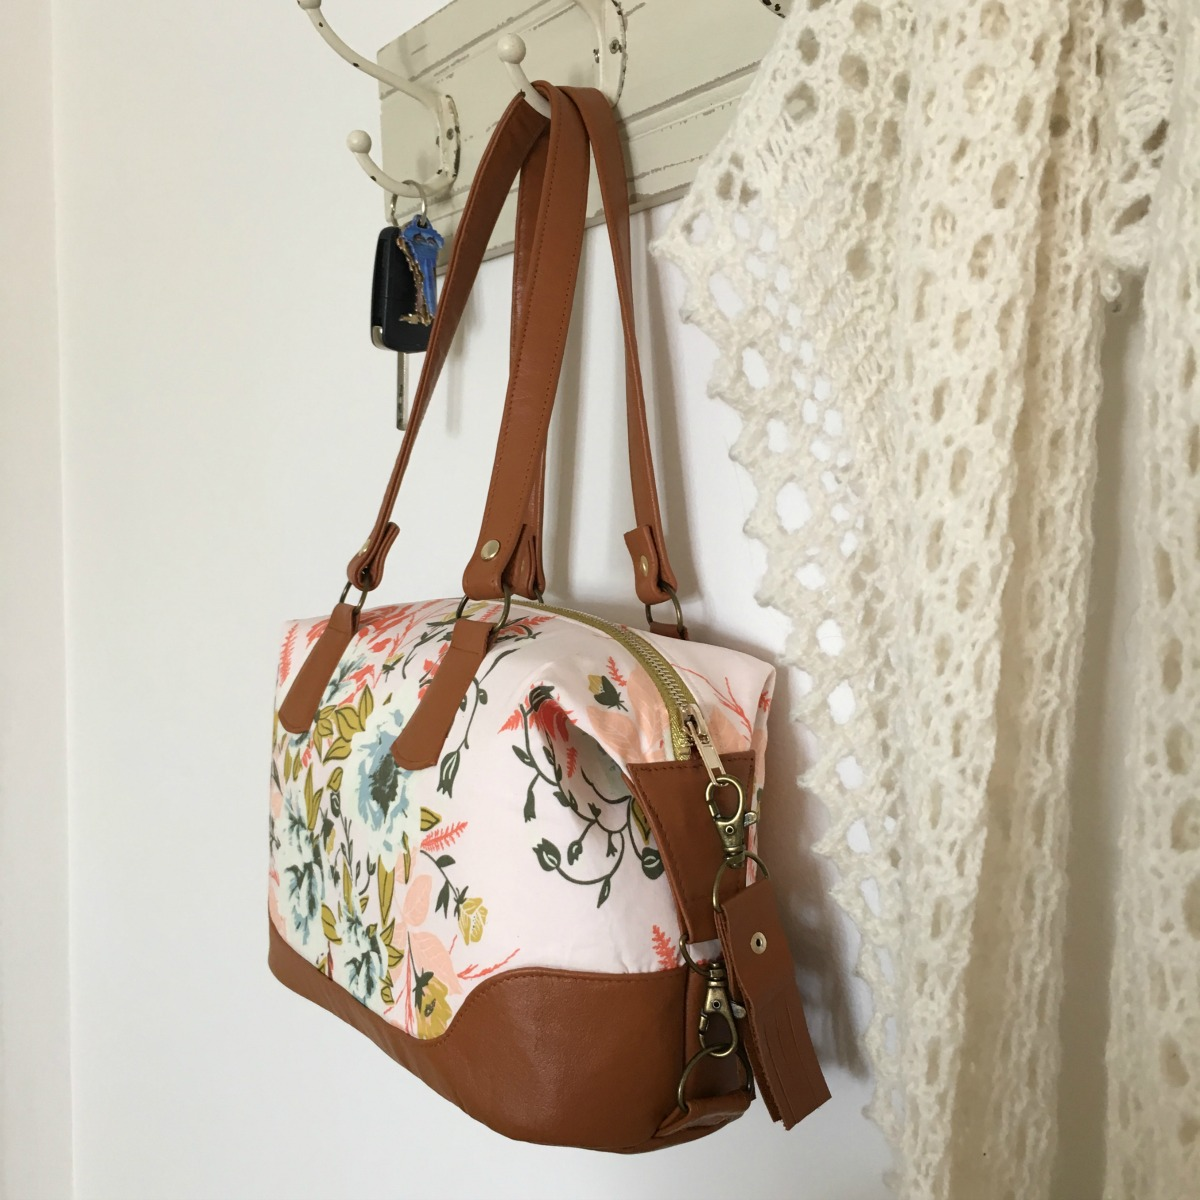 Brooklyn Bag by Swoon Patterns, made by Maxie Makes for Bonnie Christine's 'Forest Floor' for Art Gallery Fabrics.